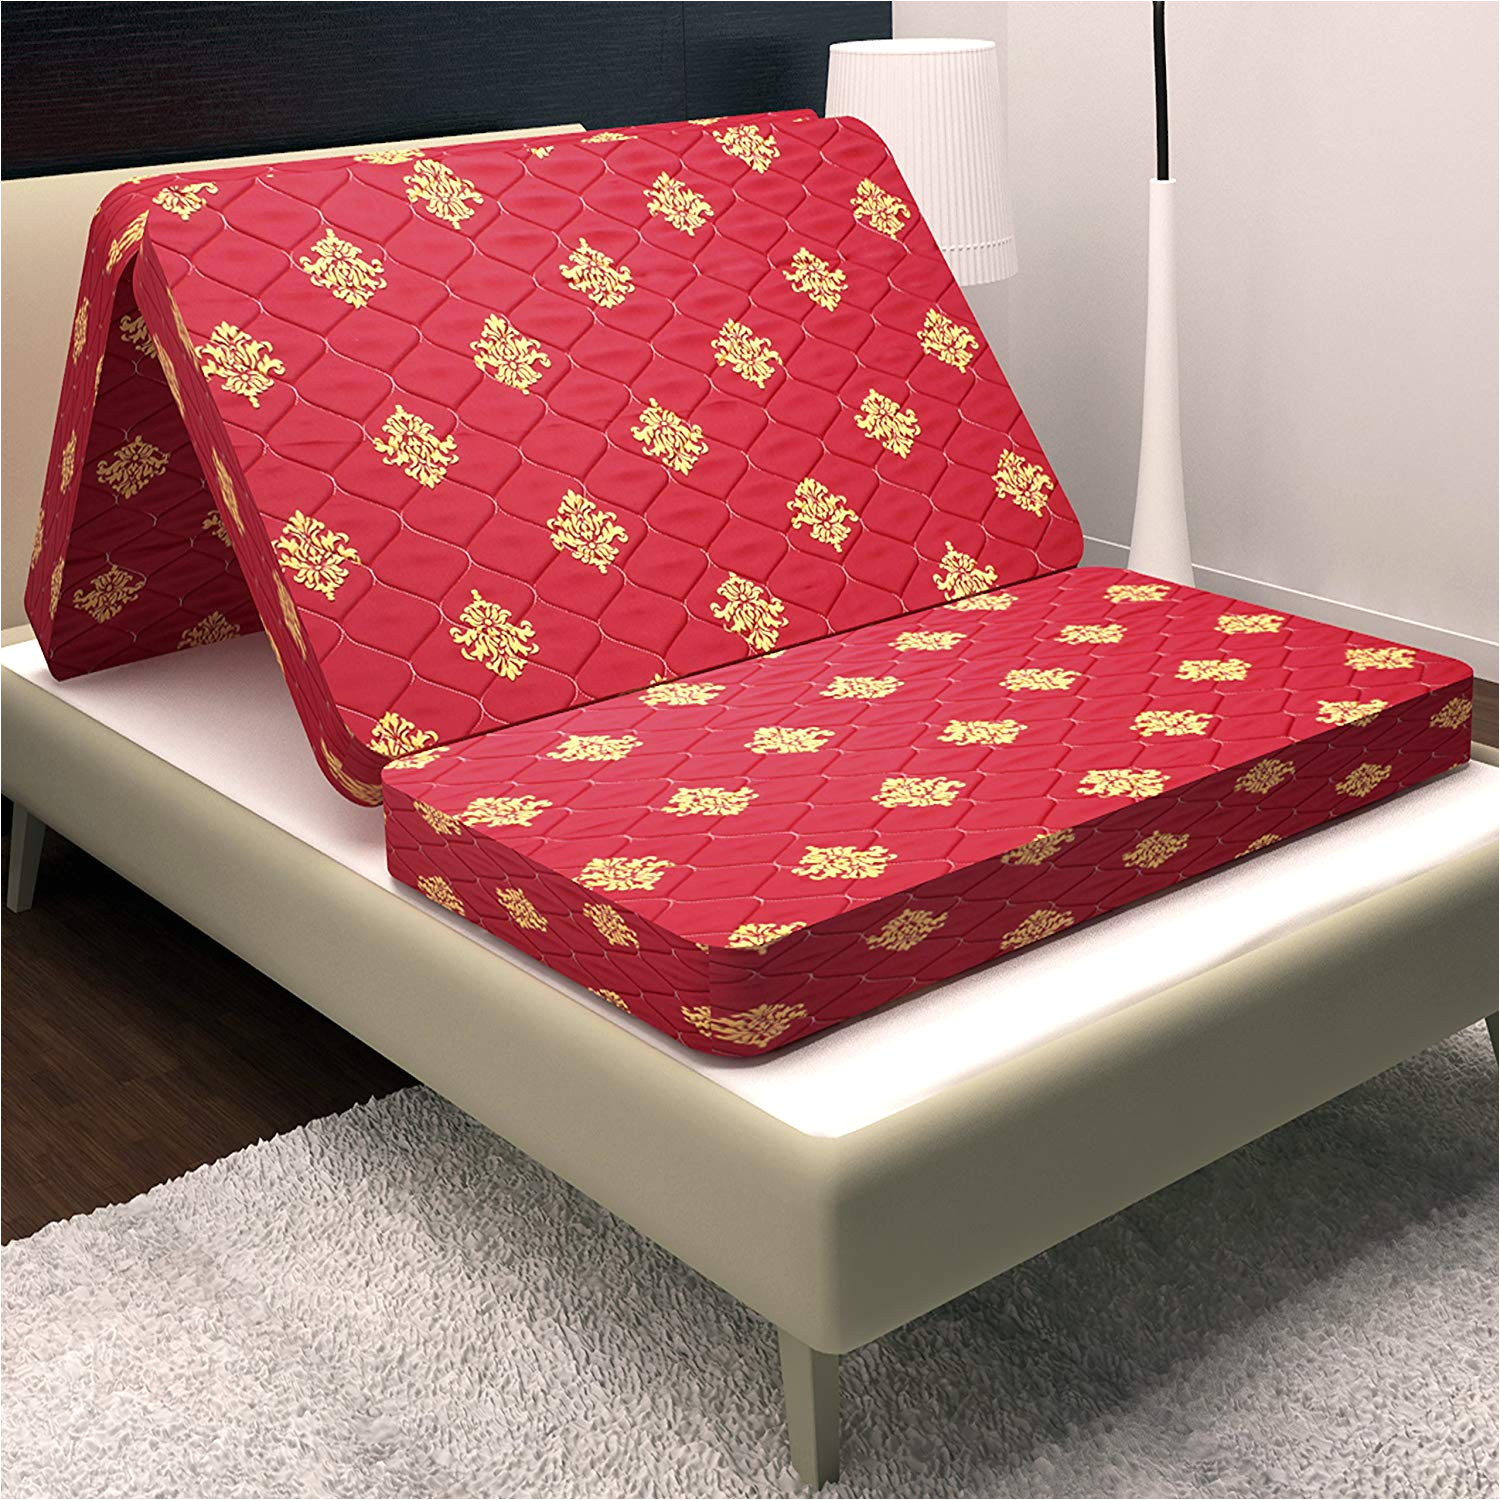 story home 4 inch single size foam mattress maroon 72x35x4